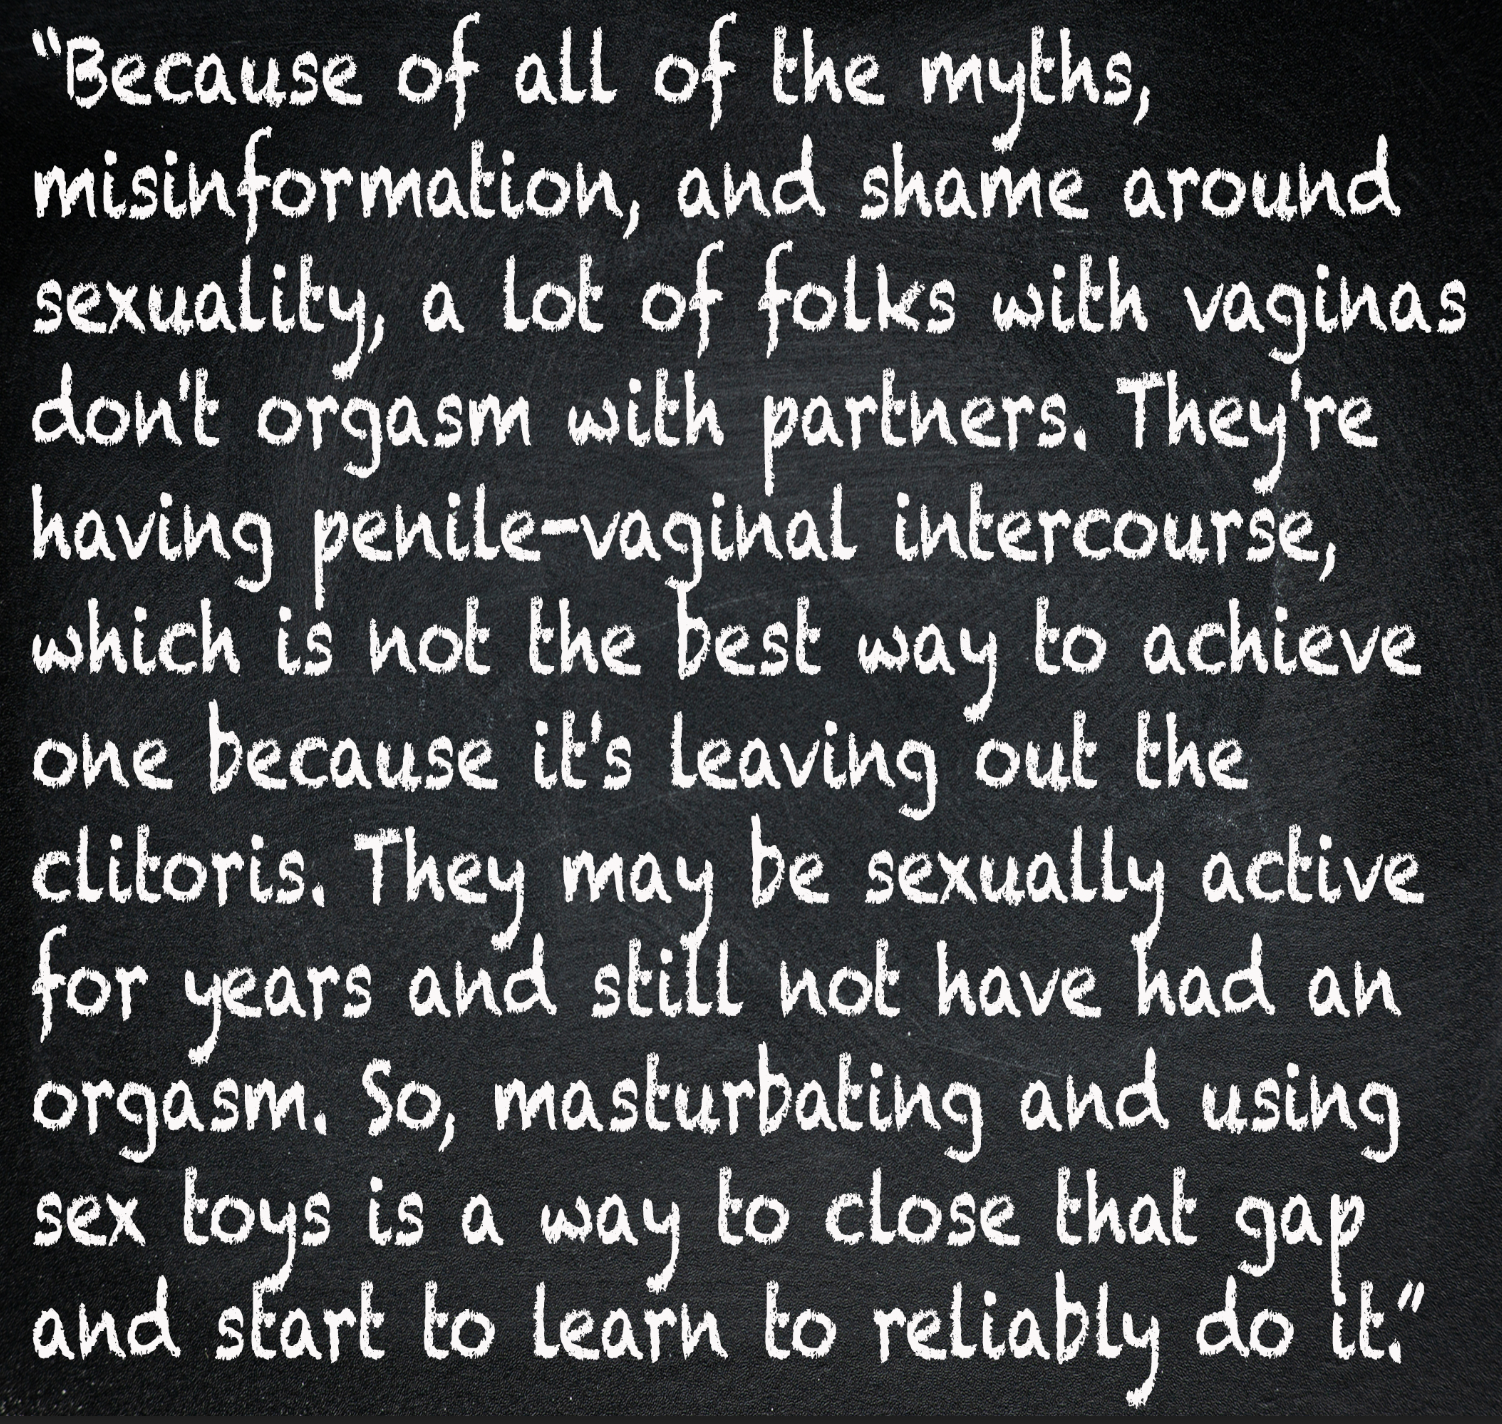 Because of all of the myths, misinformation, and shame around sexuality, a lot of folks with vaginas don't orgasm with partners. They're having penile/vaginal intercourse which is not the best way to achieve one because it's leaving out the clitoris